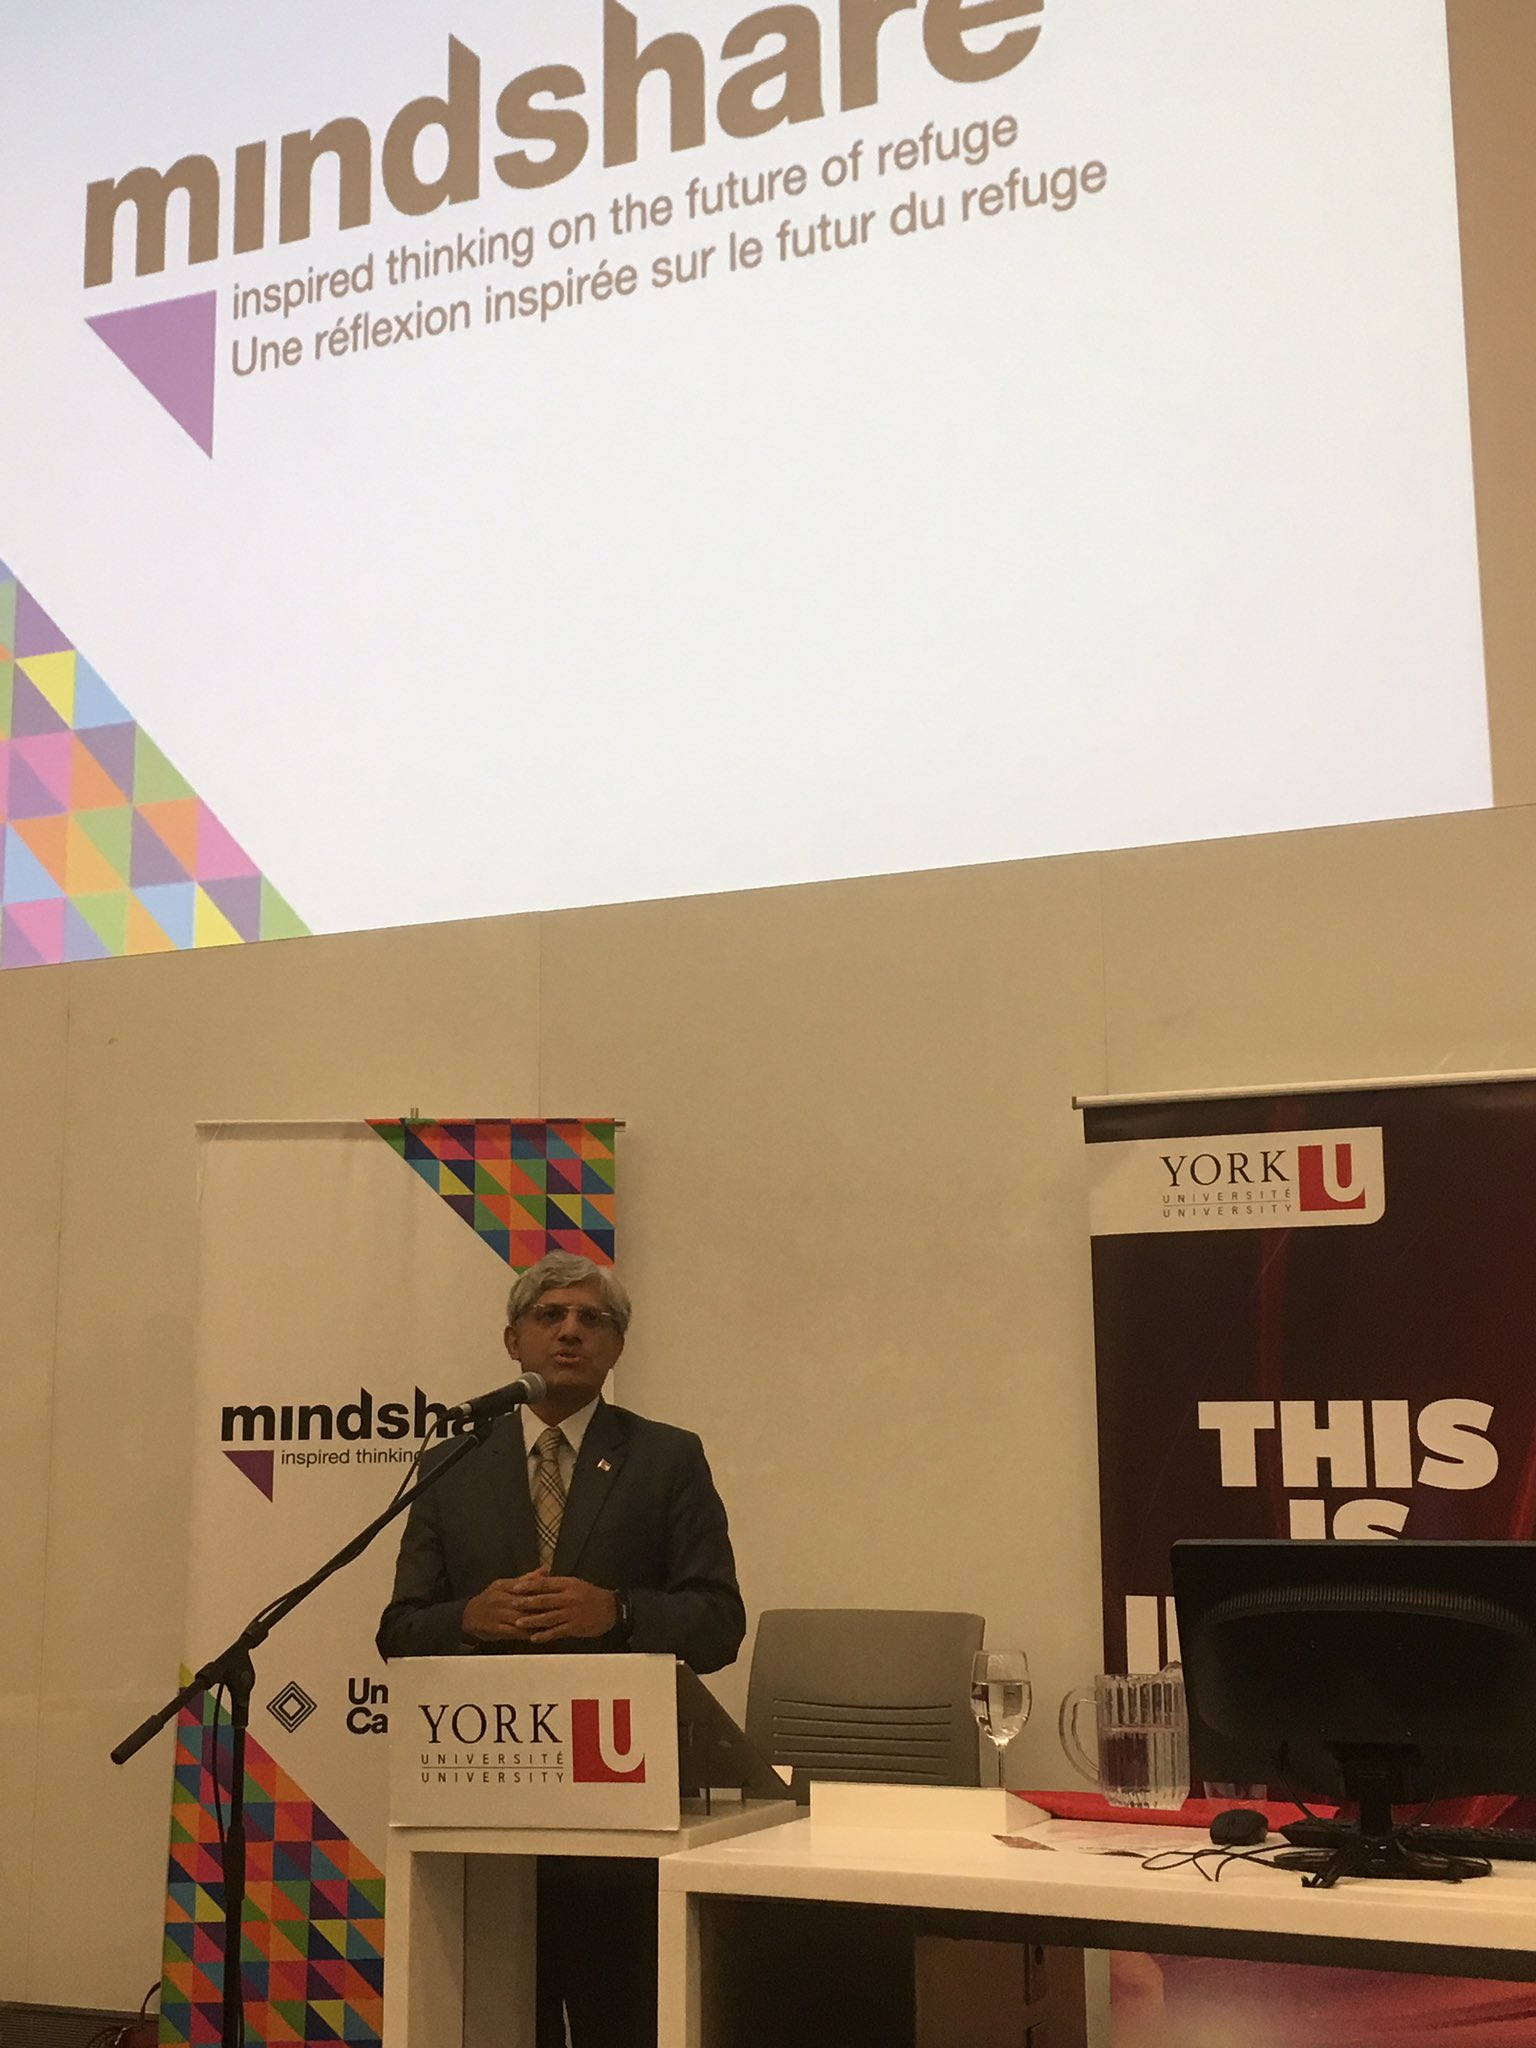 @ShafiqQaadriMPP from Ontario Ministry of Citizenship & Immigration opens #Mindshare2016 at @yorkuniversity #cdnpse https://t.co/0b3BCLUwX8